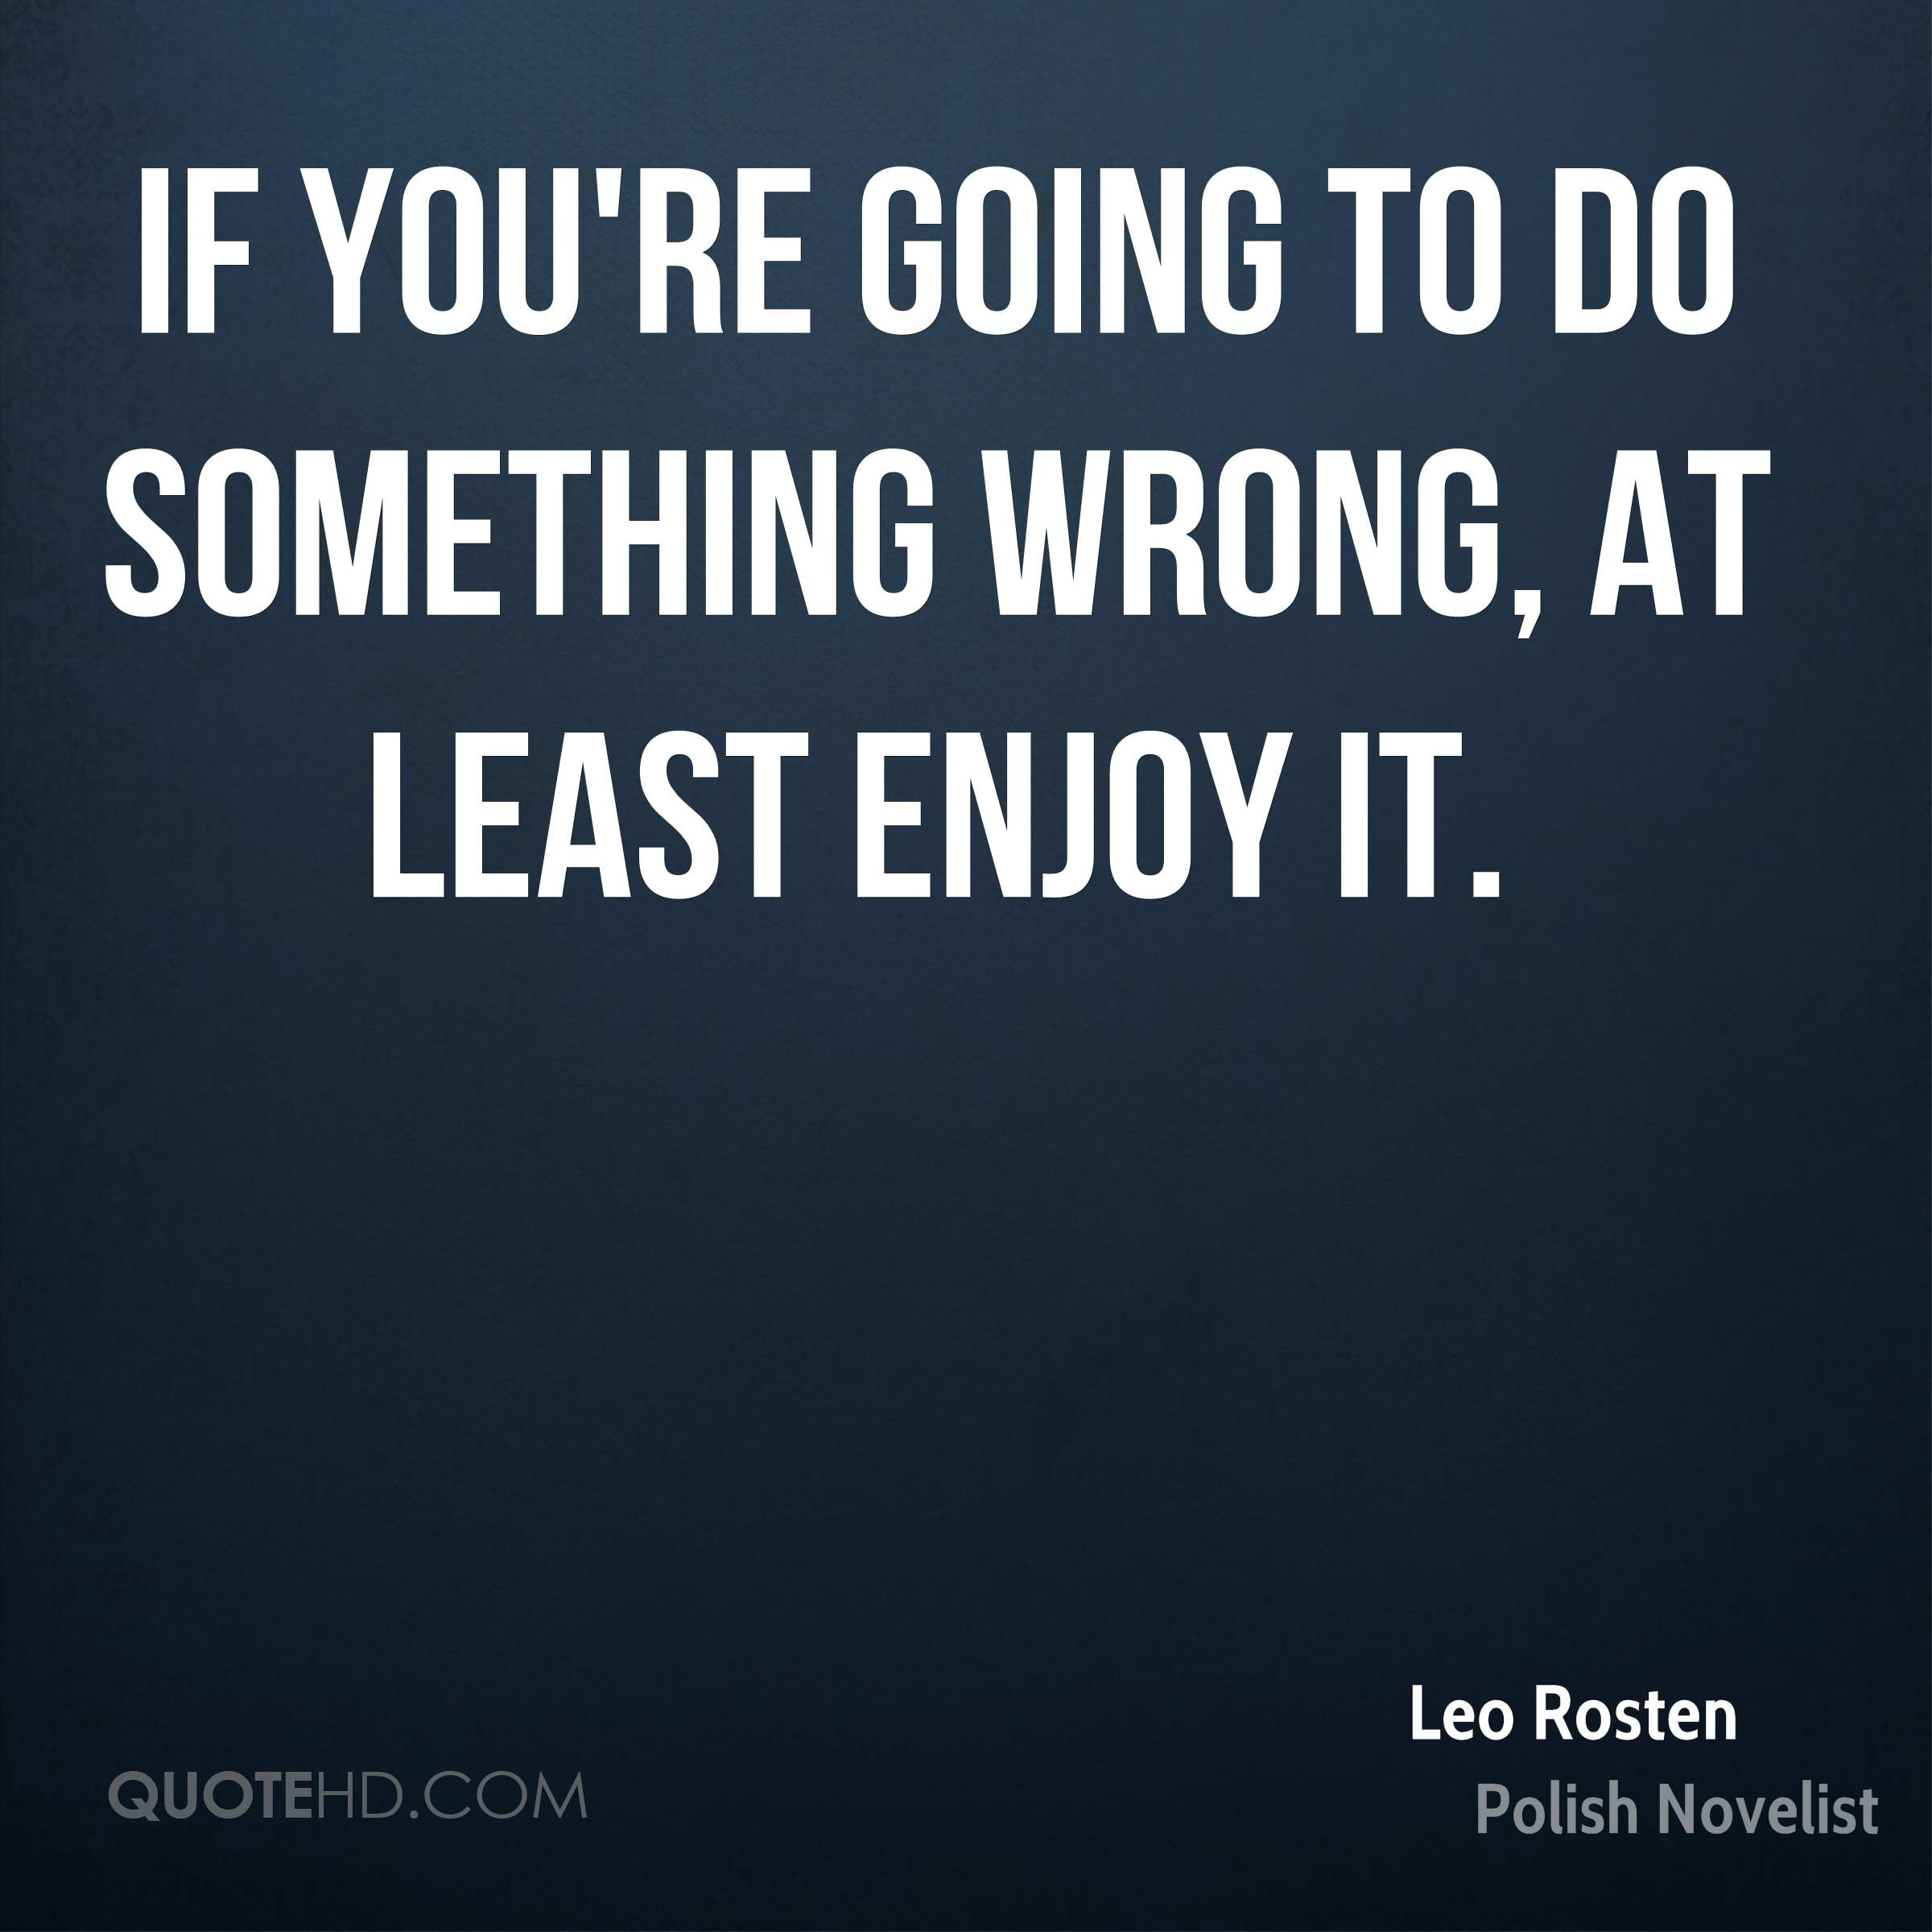 If you're going to do something wrong, at least enjoy it.